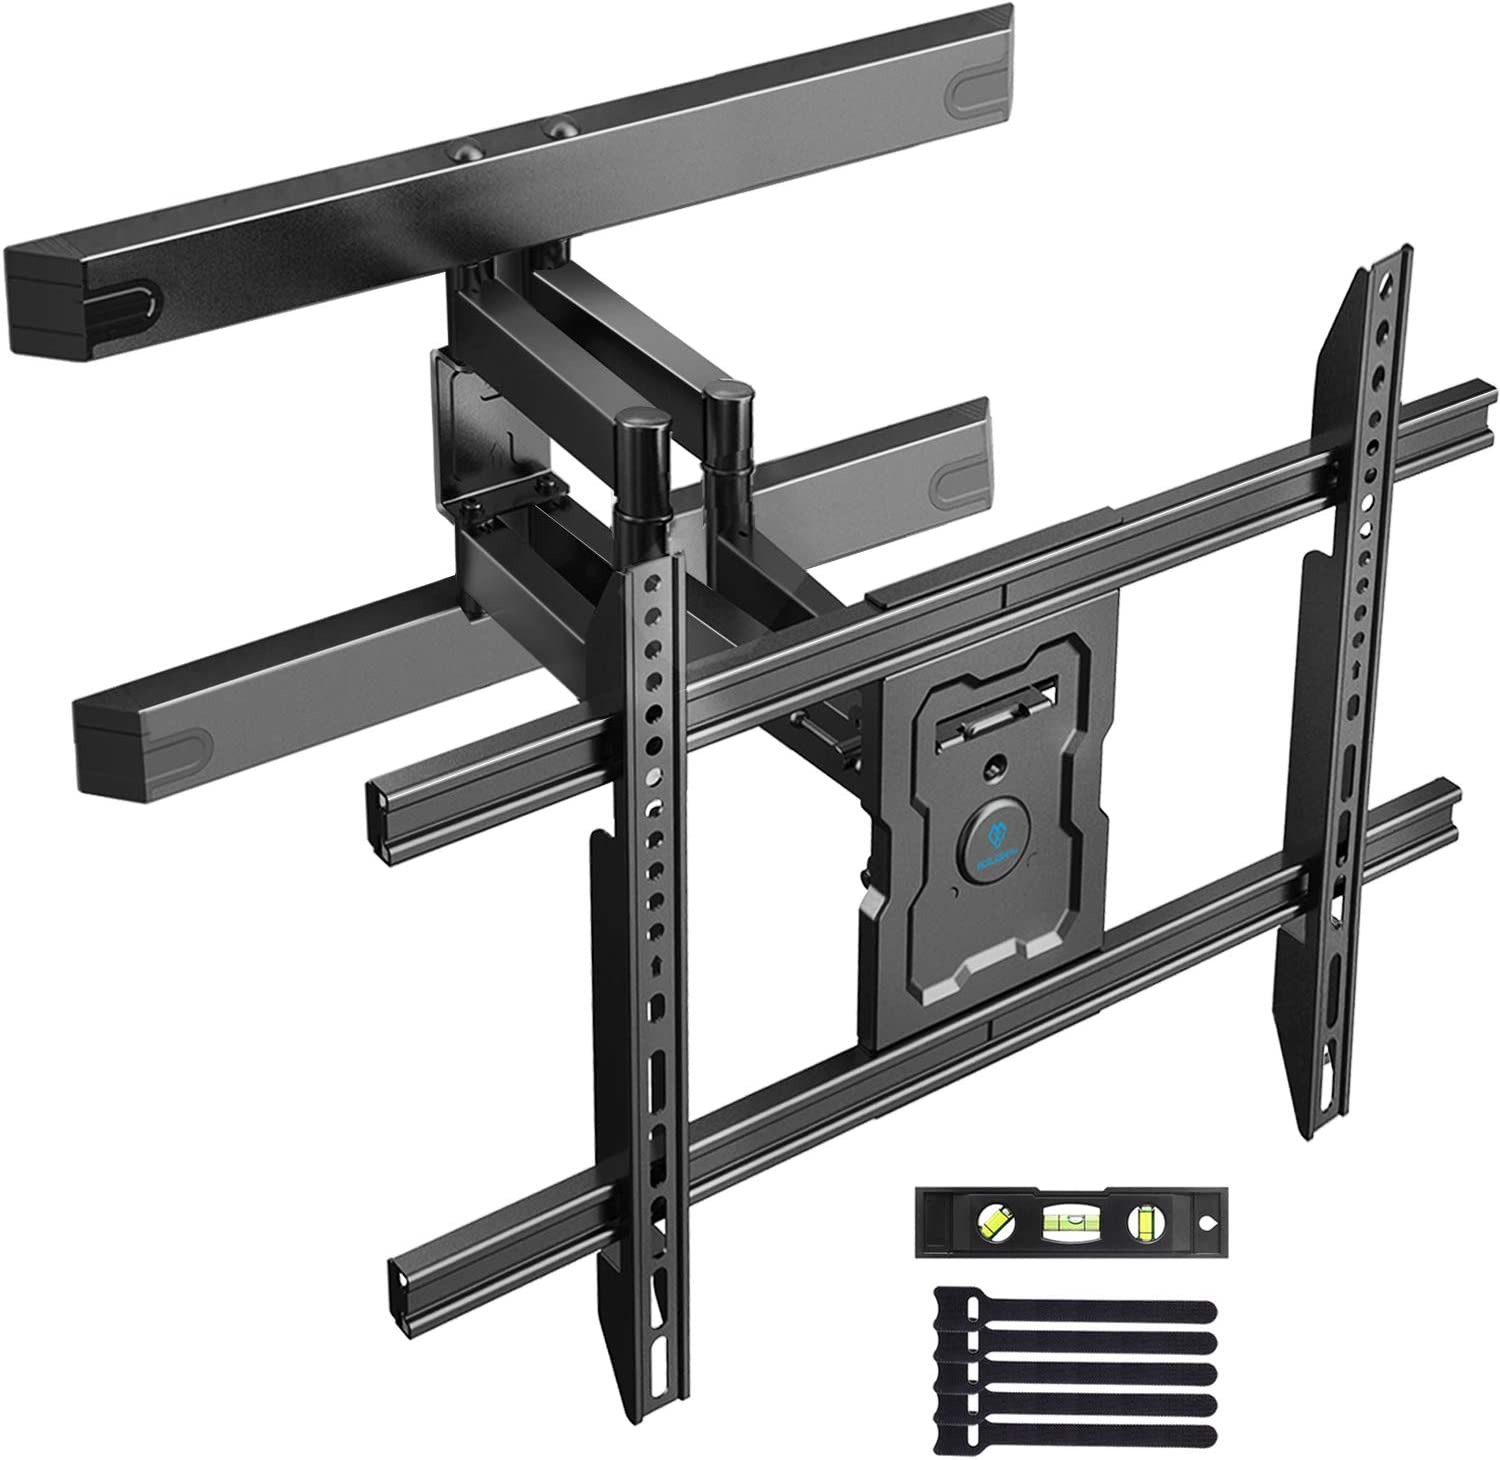 PERLESMITH Full Motion TV Wall Mount for 37-80 Inch Flat Curved TVs with Smooth Tilts Swivel & Extends - Dual Articulating Arms Wall Mount TV Bracket Supports TVs up to 132 lbs Max VESA 600x400